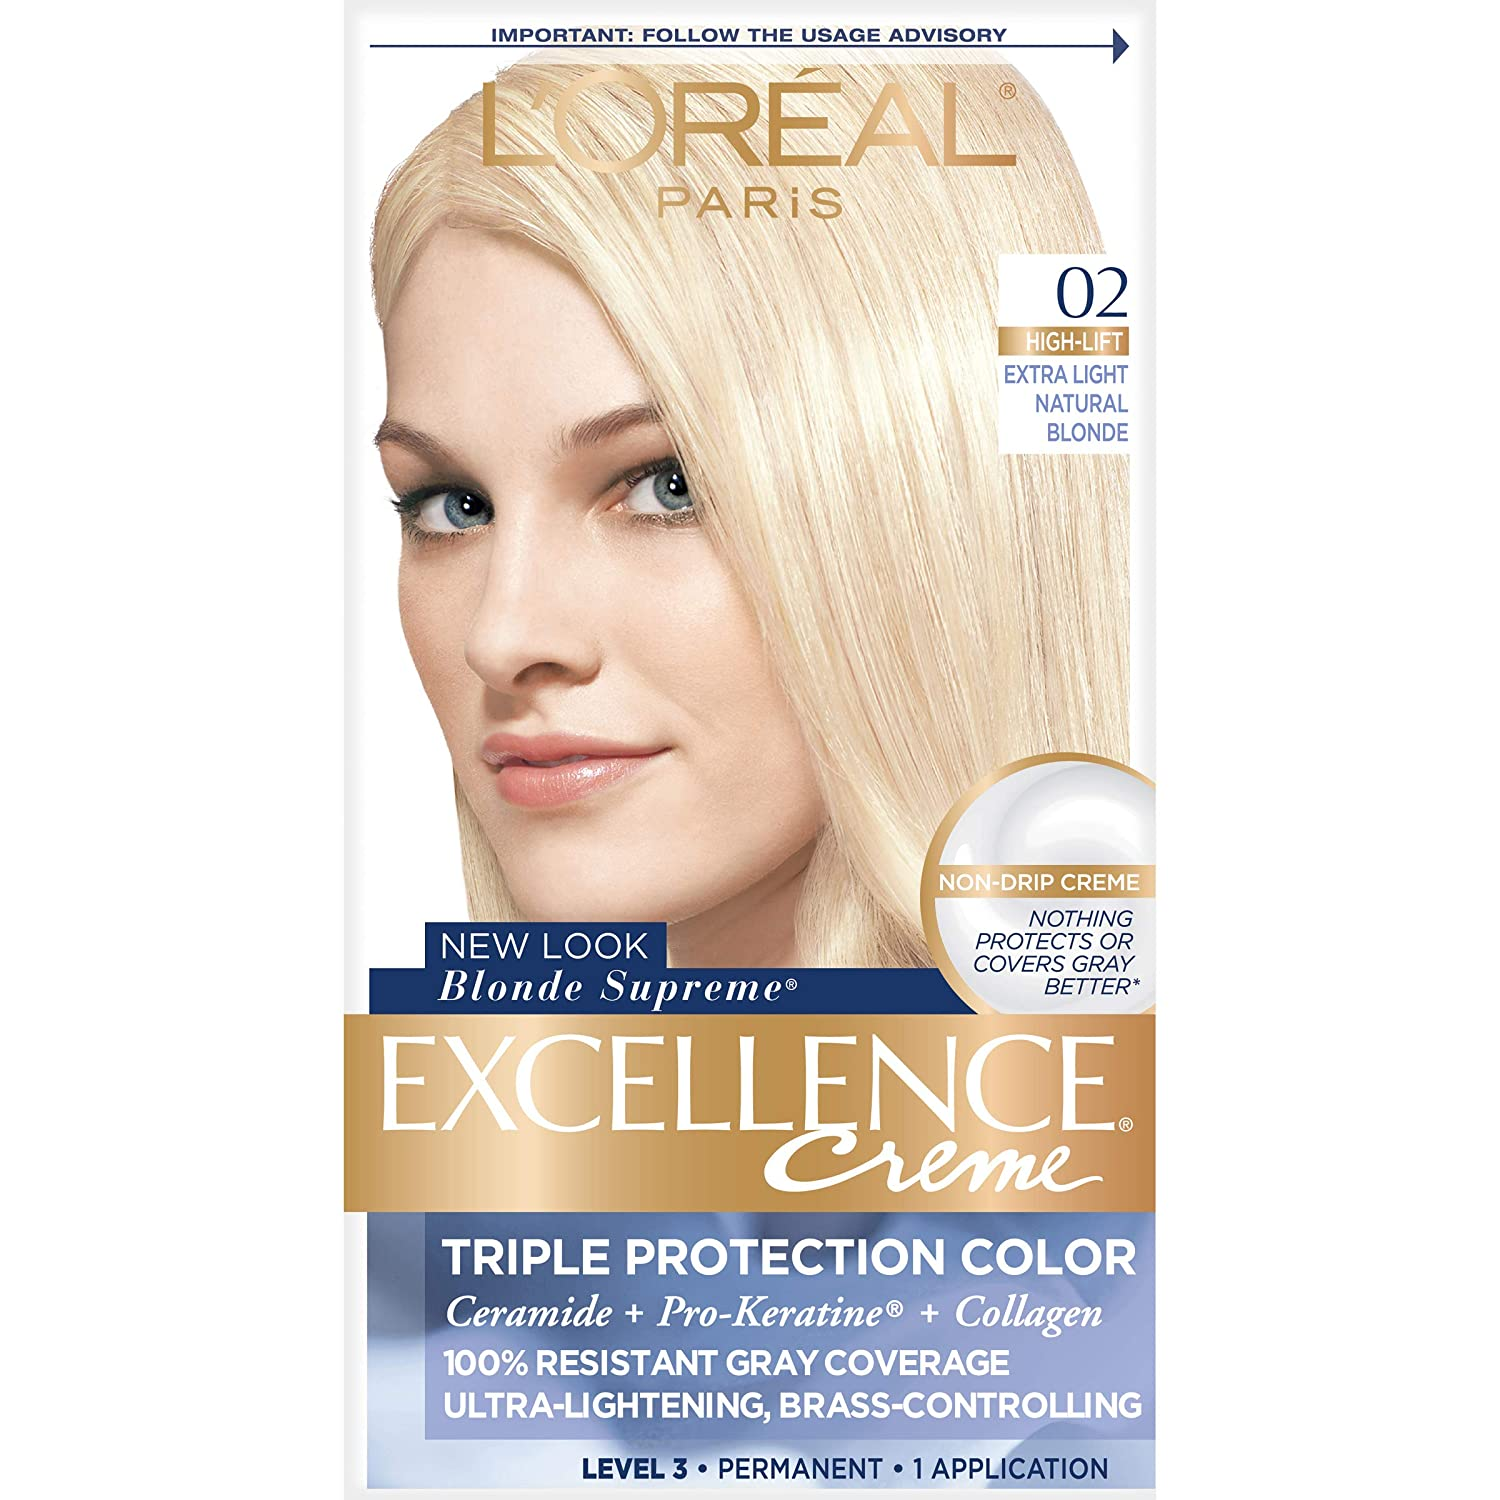 L'Oreal Paris Excellence Creme Permanent Hair Color, 02 Extra Light Natural Blonde, 100% Gray Coverage Hair Dye, Pack of 1